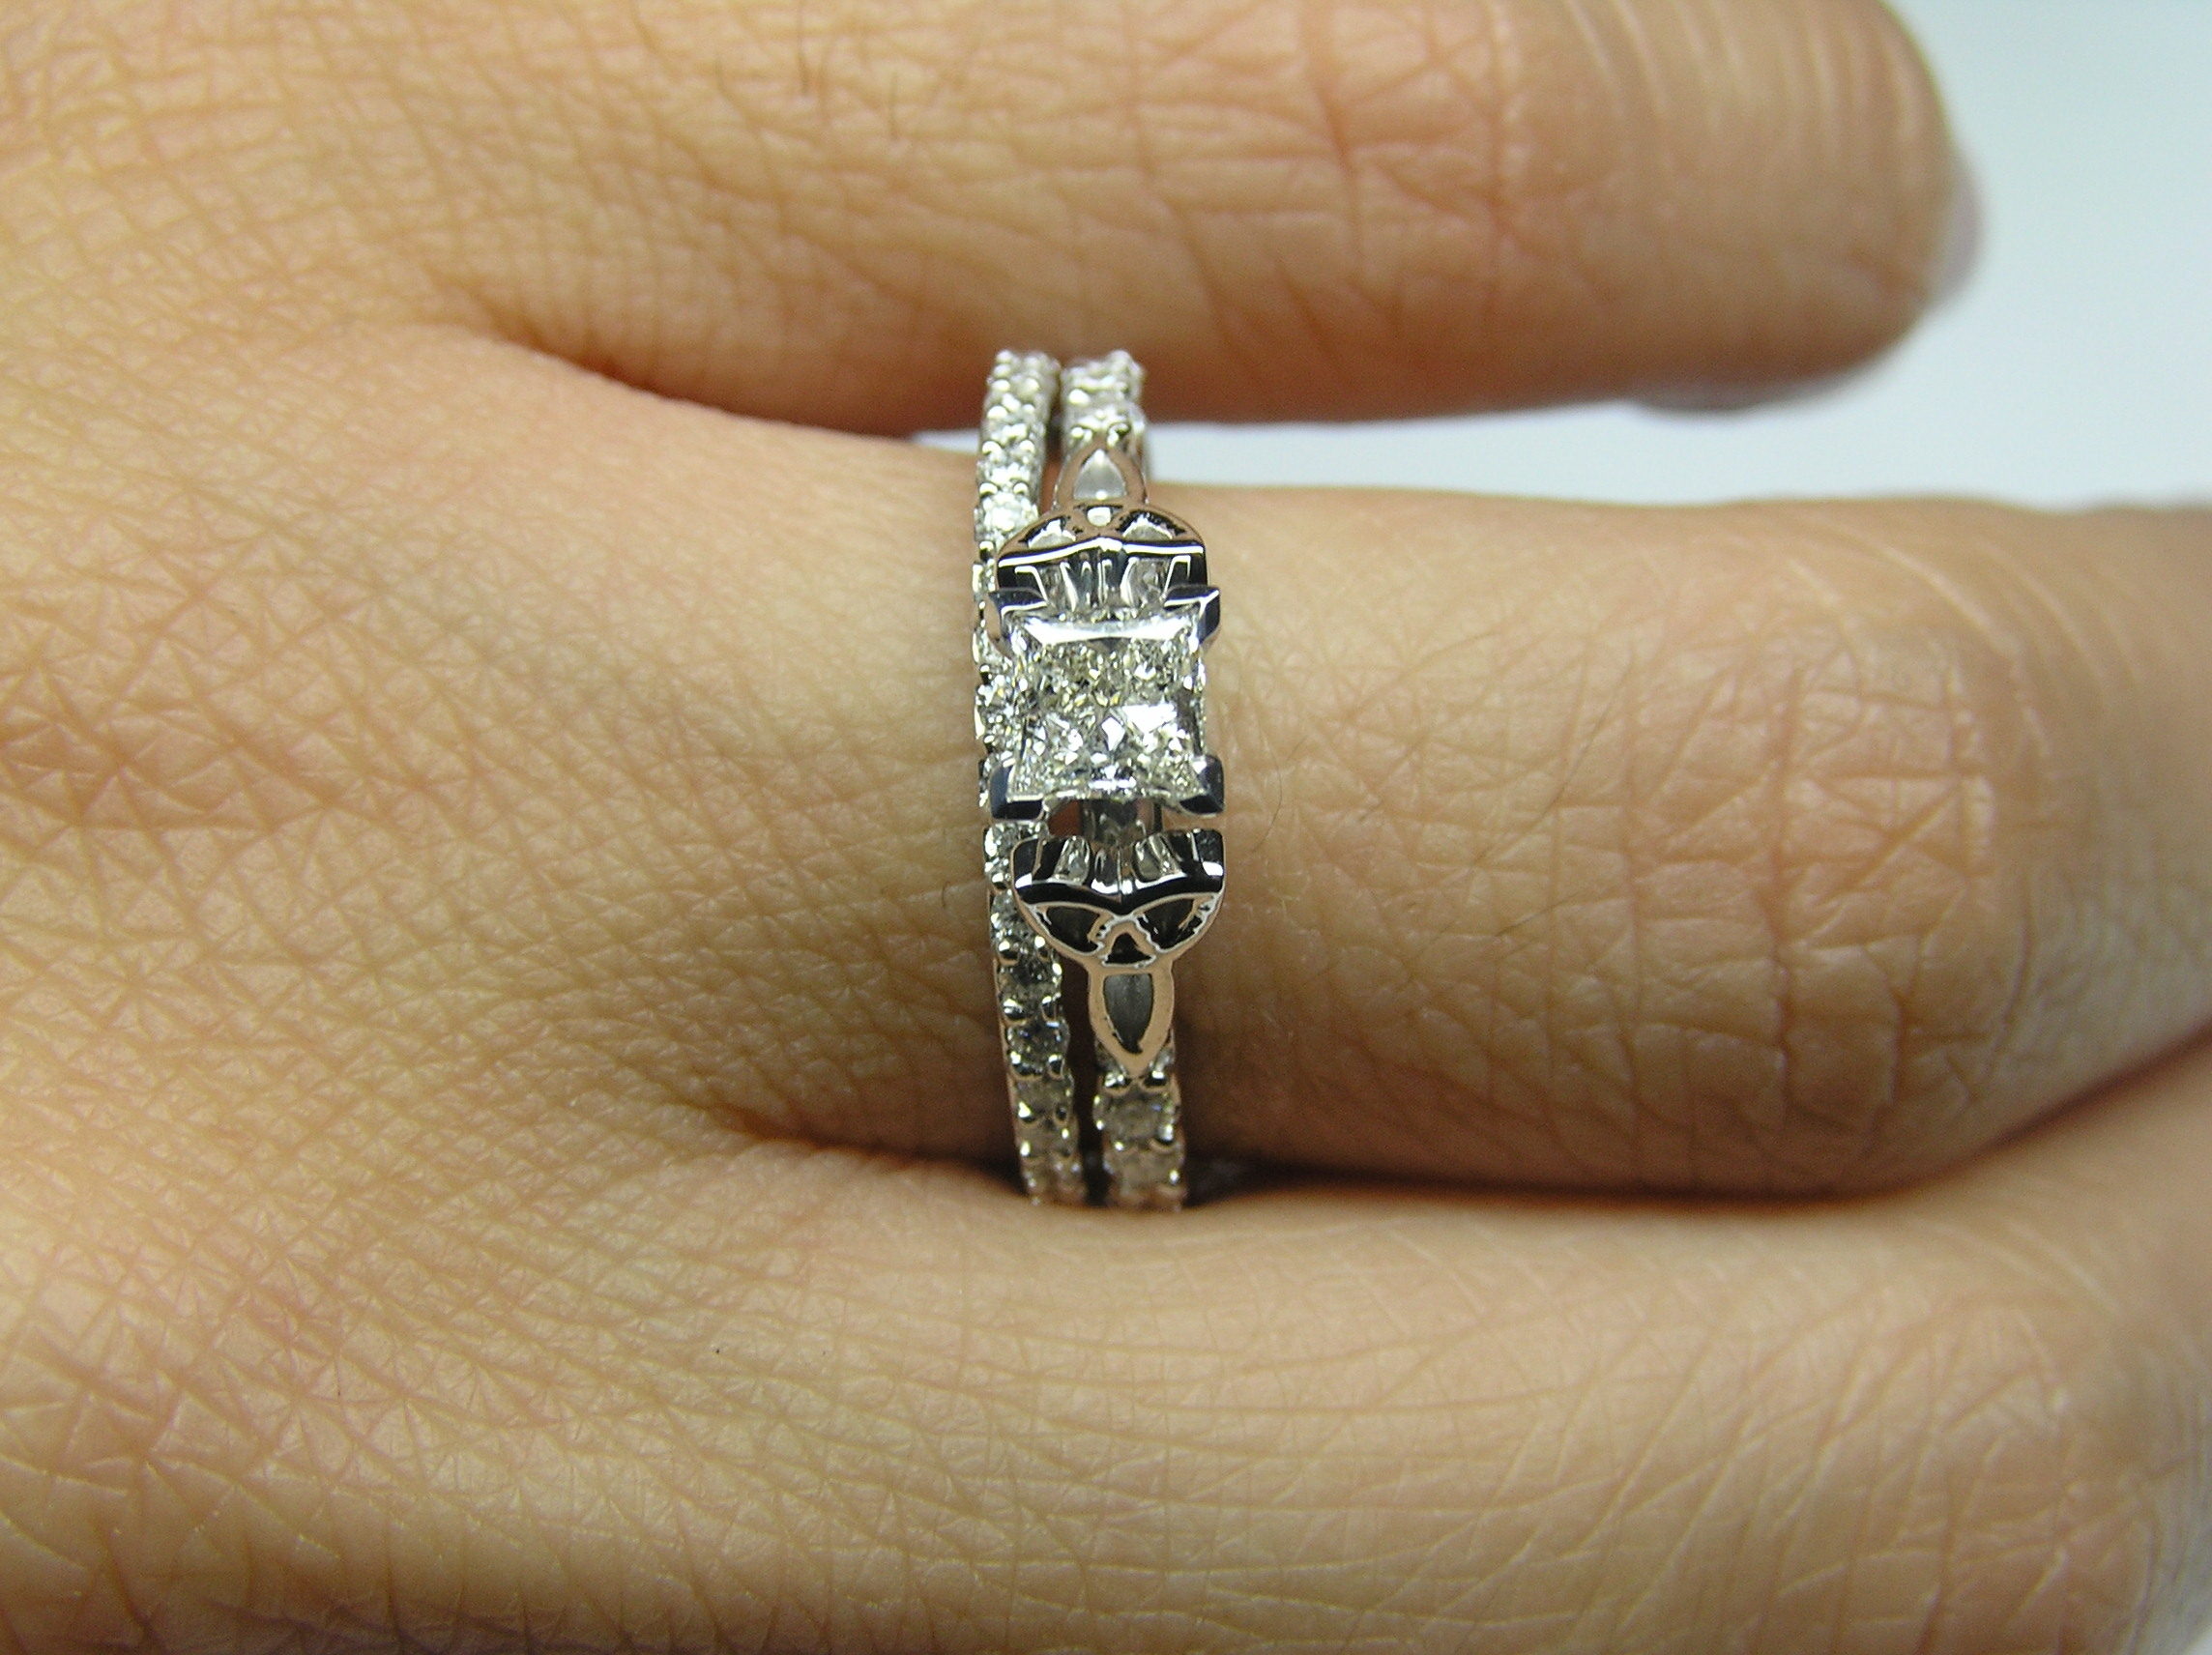 Princess Diamond Cut Celtic Knot Engagement Ring with Diamond Accents & Matching Wedding Band in 14K White Gold